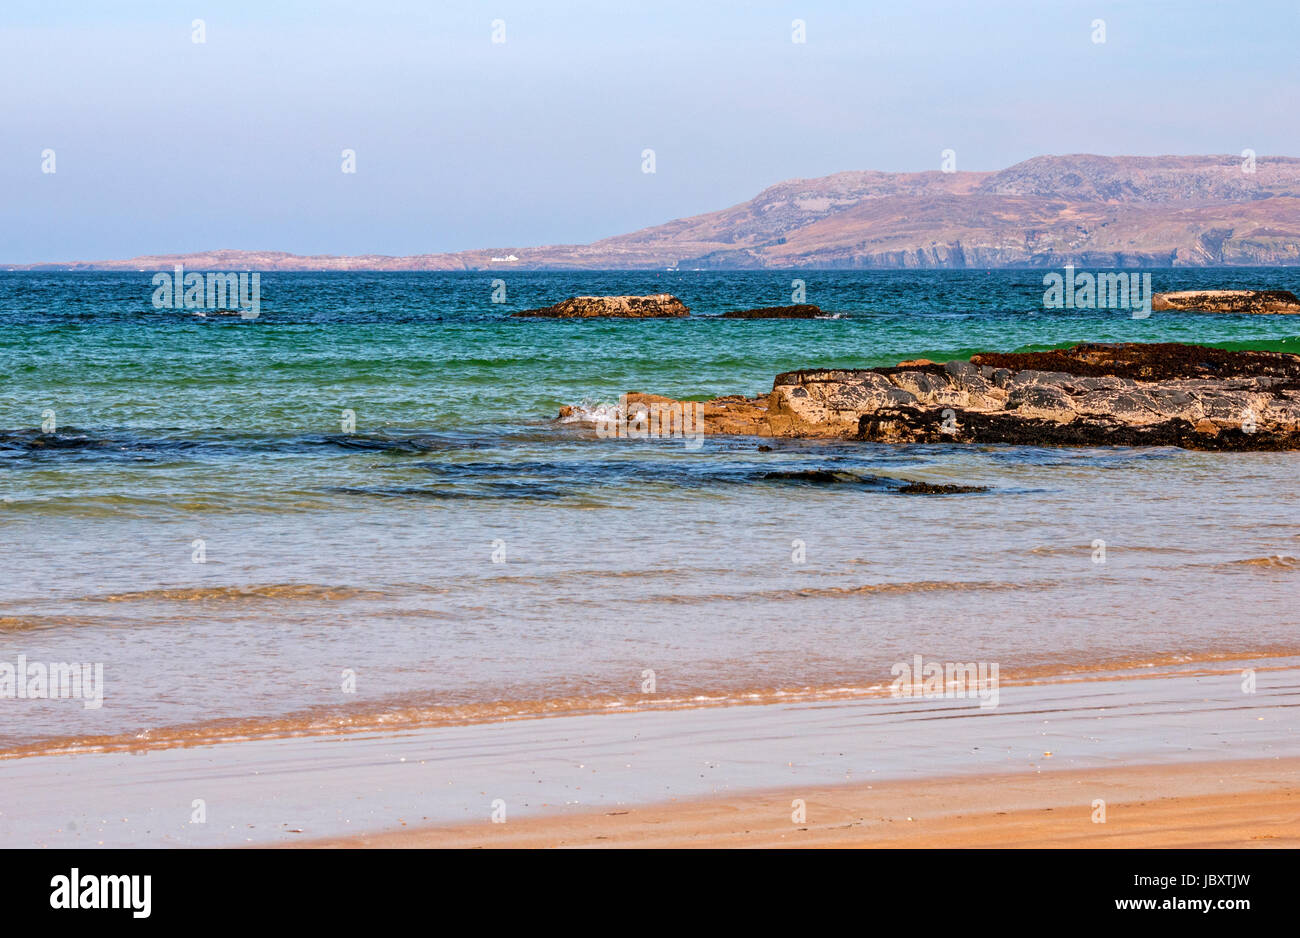 Views from Killahoey Beach, Dunfanaghy, County Donegal, Ireland - Stock Image